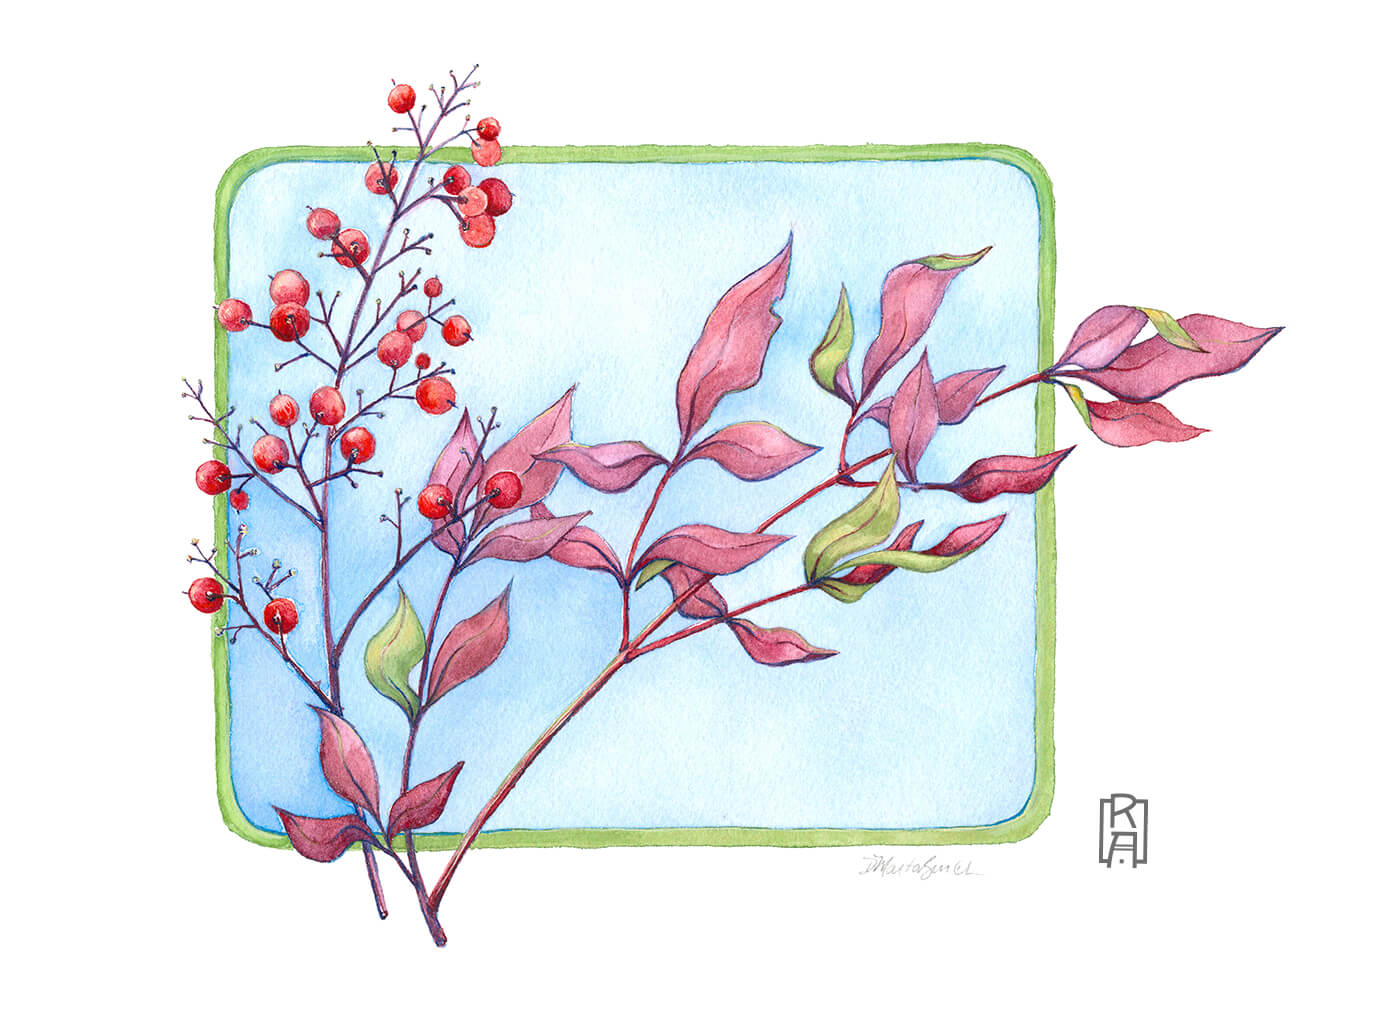 Heavenly Bamboo | Mixed Media Painting by Denise Marta-Burch